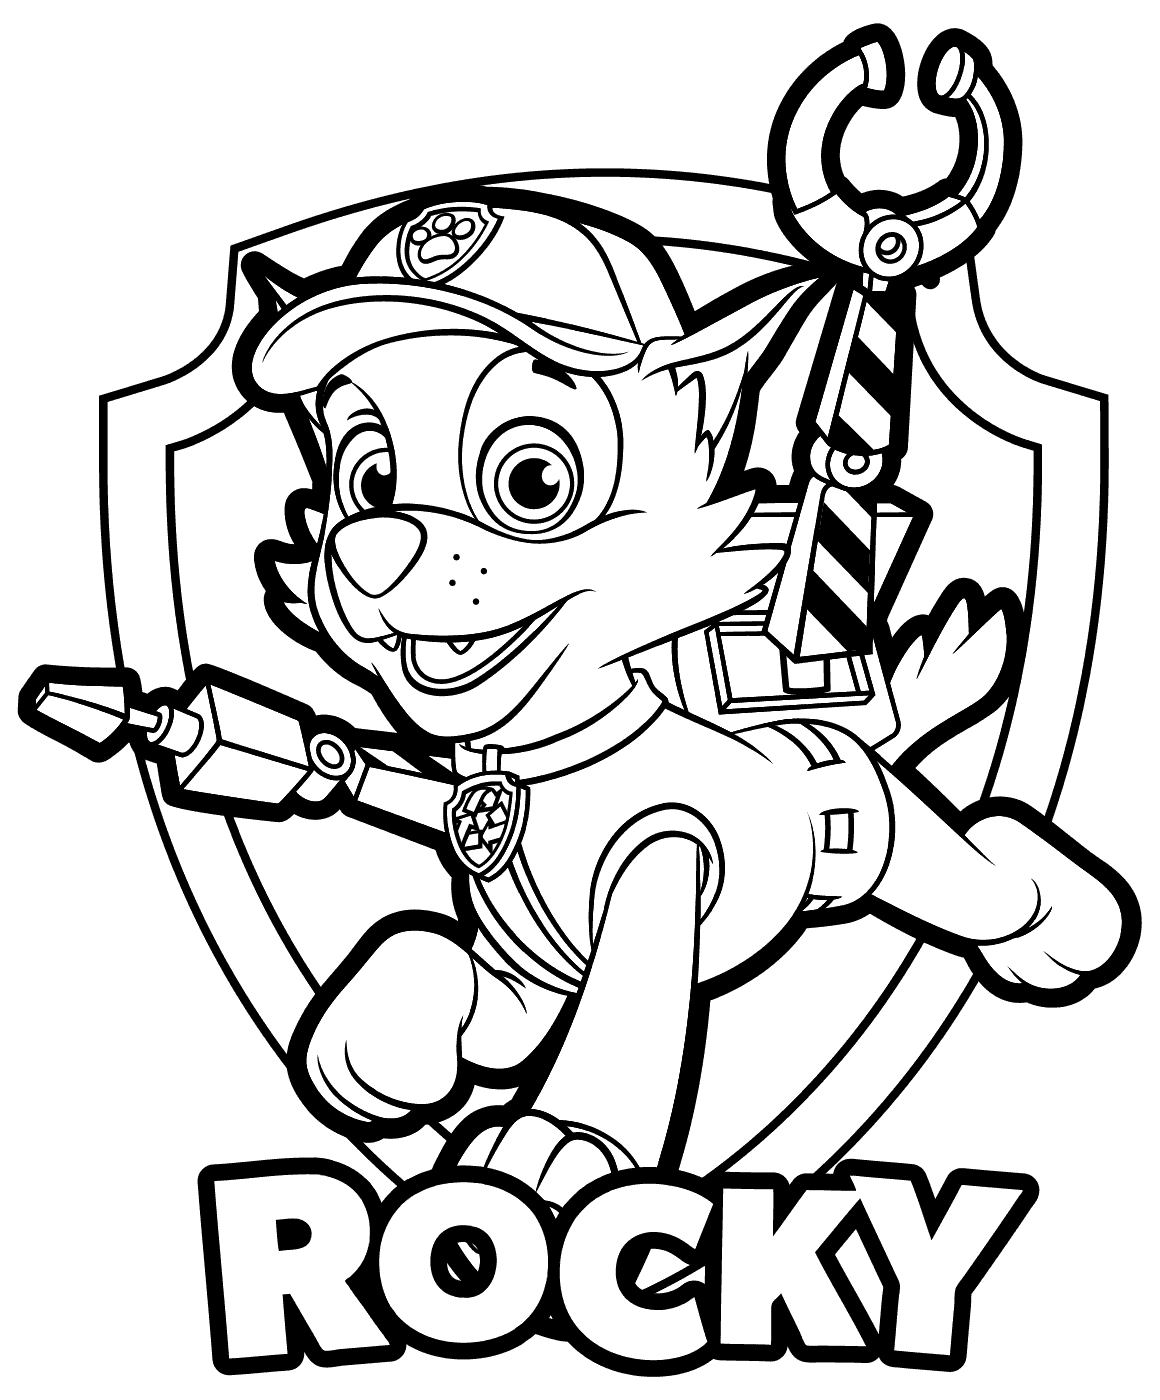 paw patrol coloring page paw patrol coloring pages best coloring pages for kids patrol page paw coloring